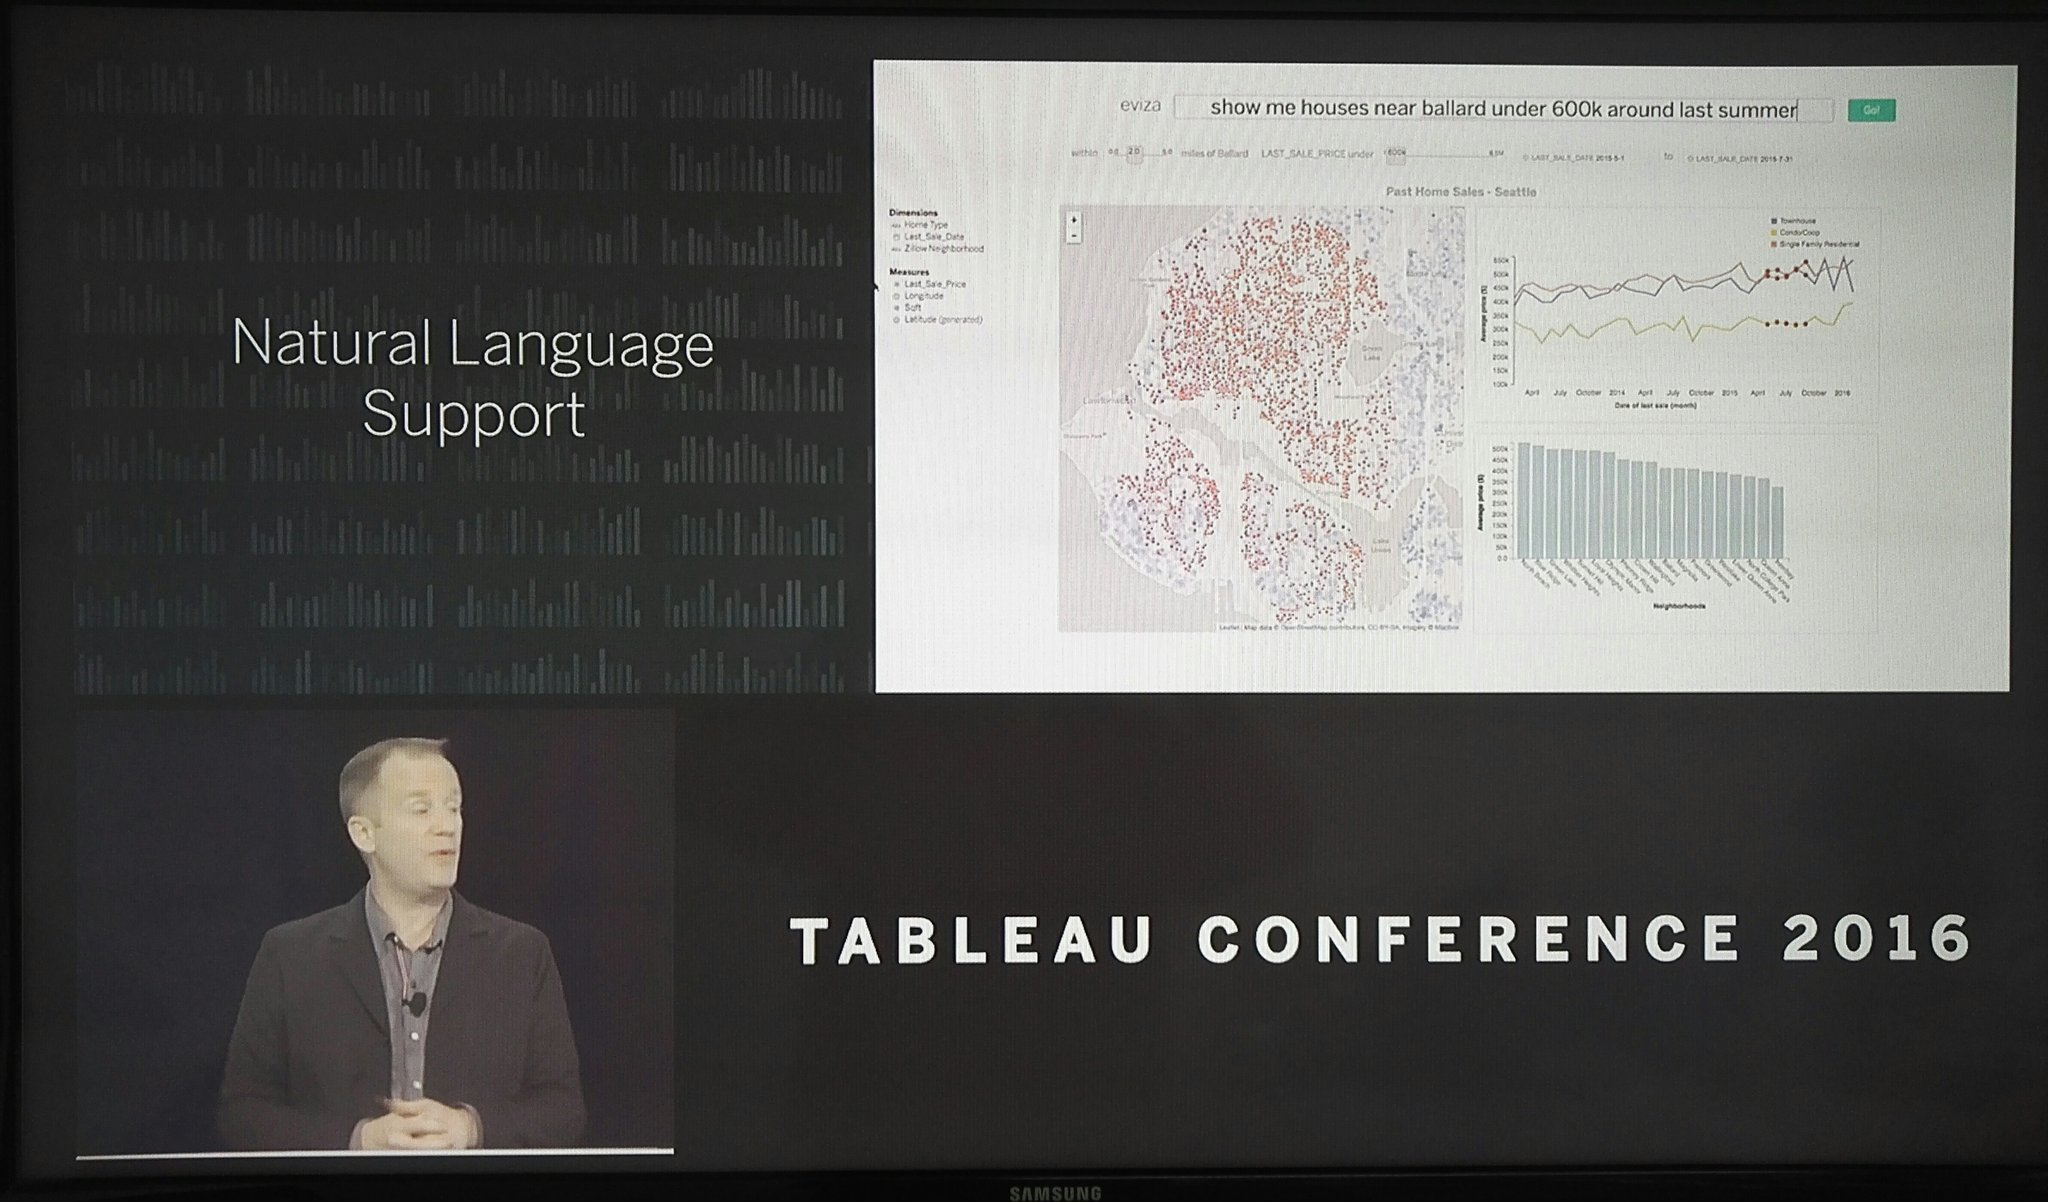 #data16 Le #NaturalLanguageSupport, une feature assez folle ! #TableauVision https://t.co/s1drTsfGPB